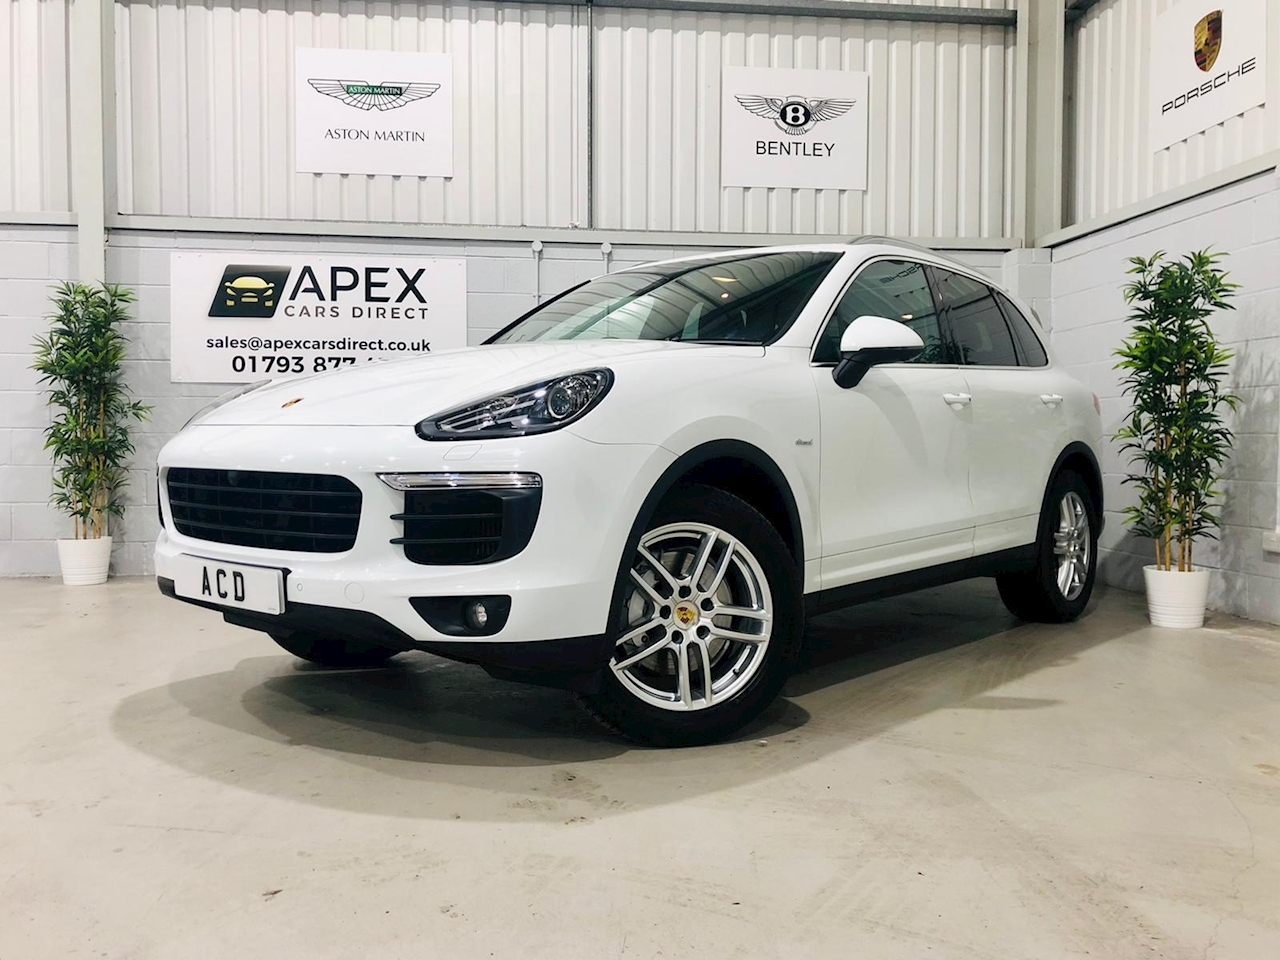 3.0 TD SUV 5dr Diesel Tiptronic 4WD (s/s) (262 ps)